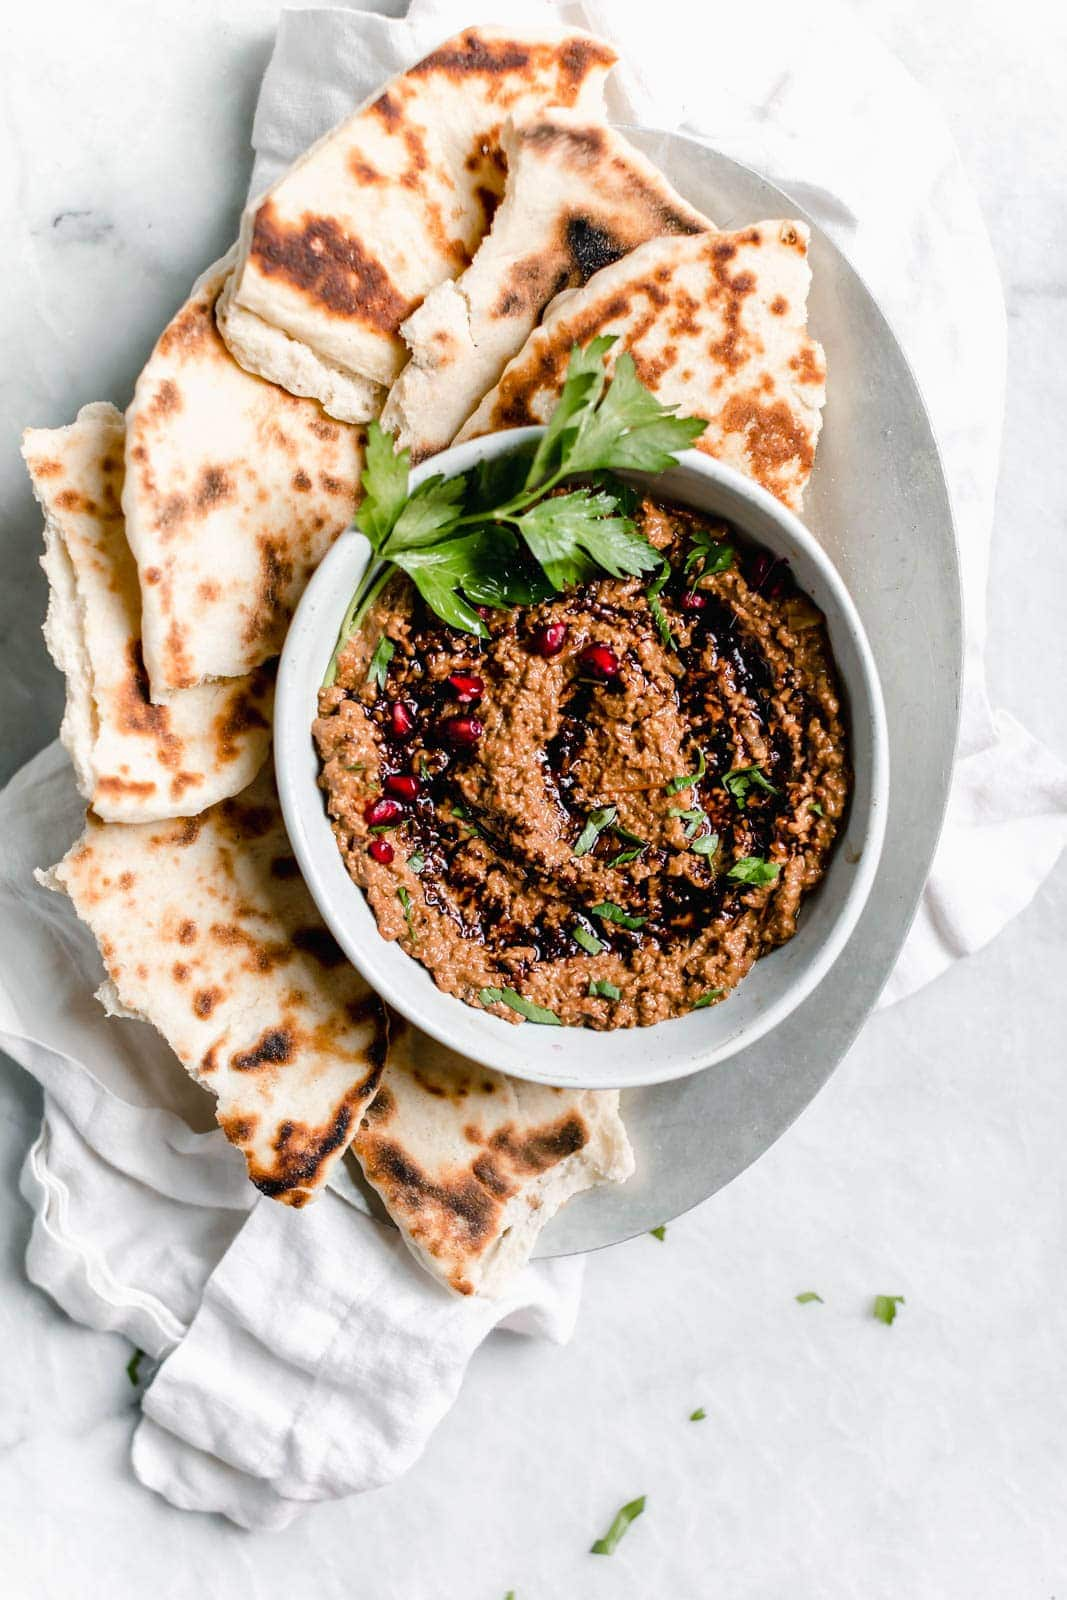 Muhammara (Roasted Red Pepper Walnut Dip) with pita bread